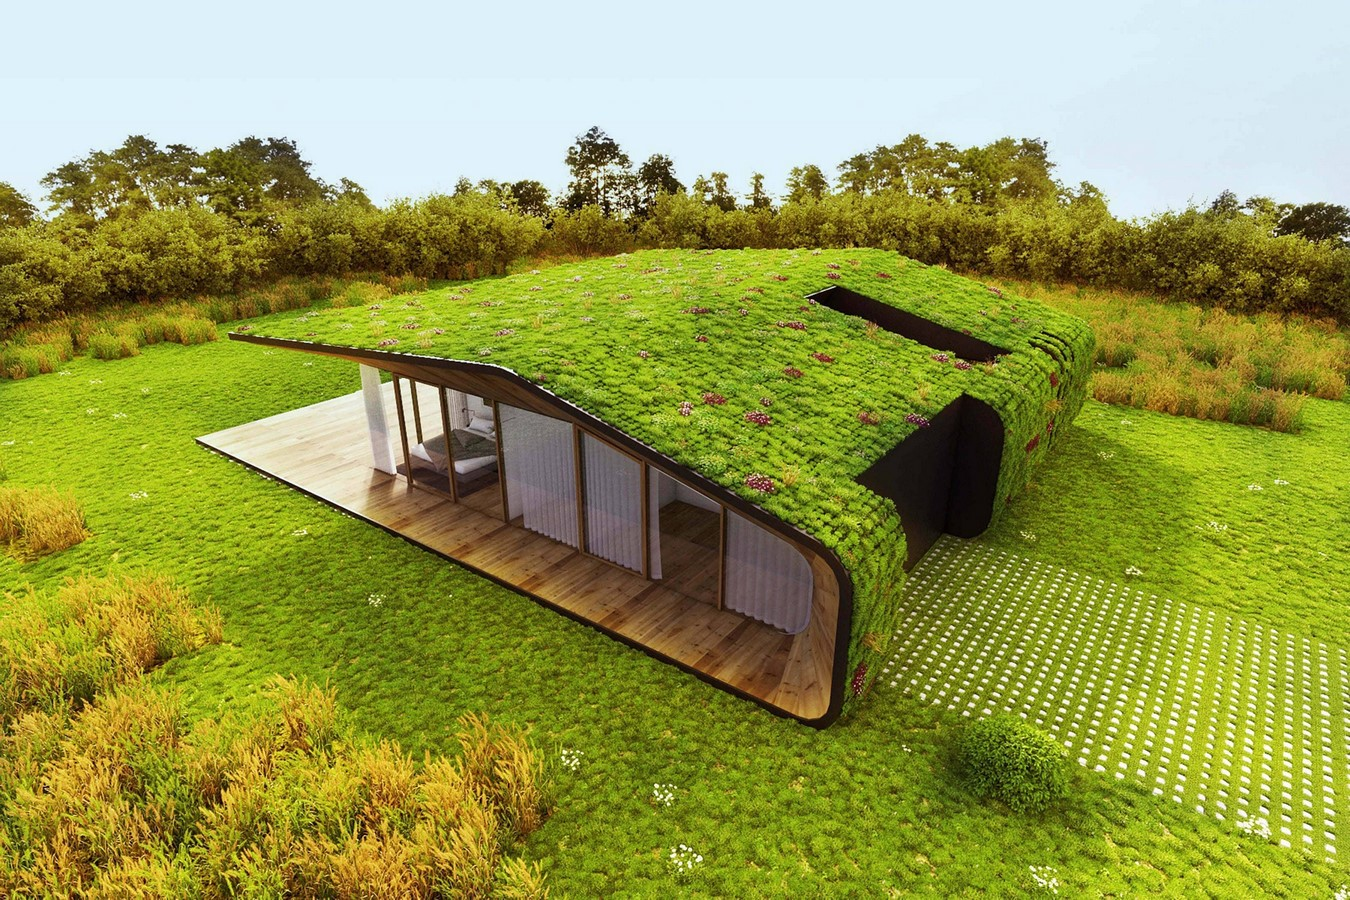 10 things to remember when designing rooftop gardens - Sheet10